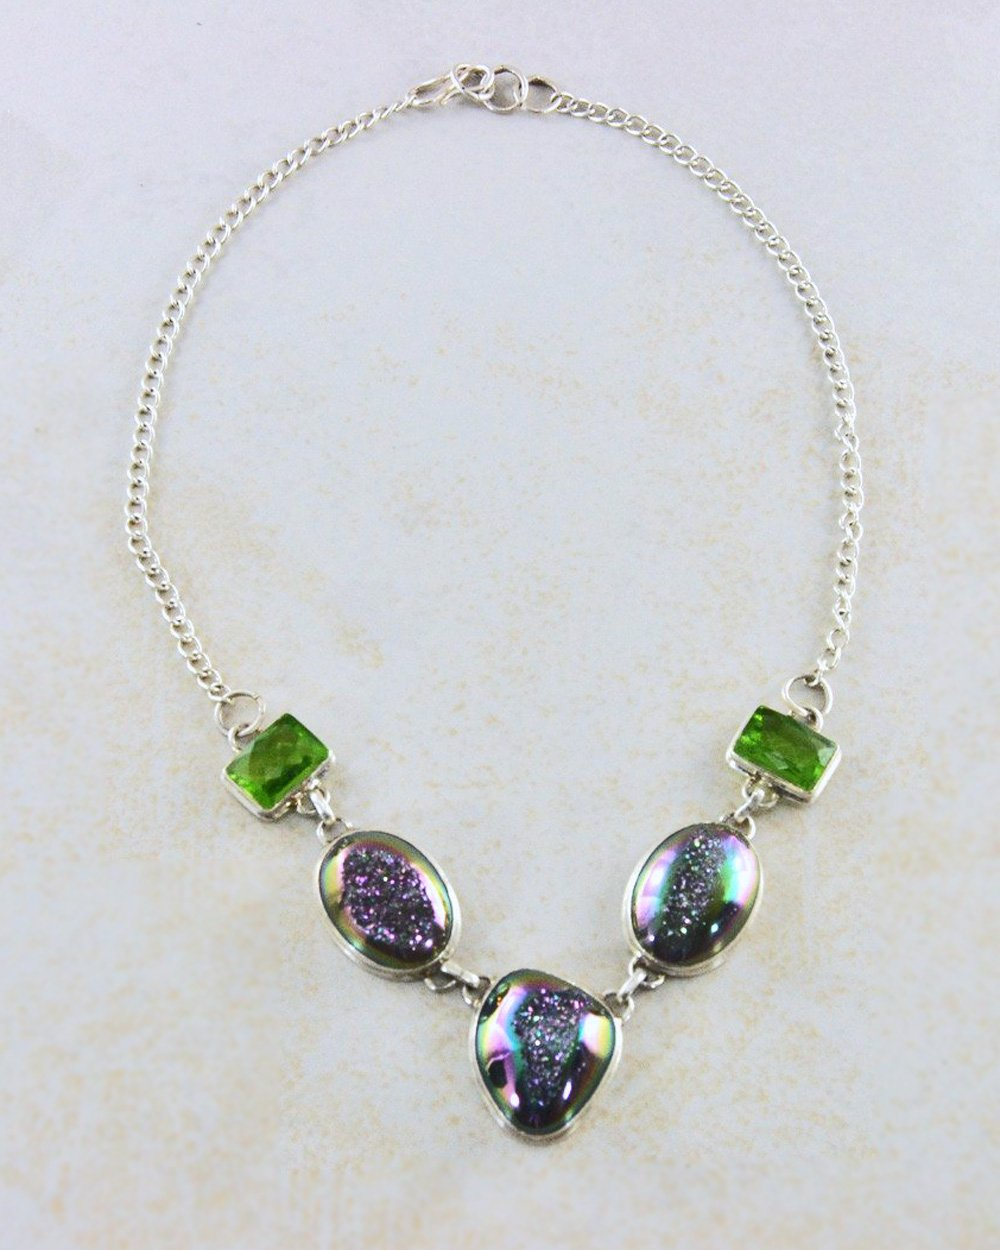 Aura Druzy Necklace in Sterling Silver